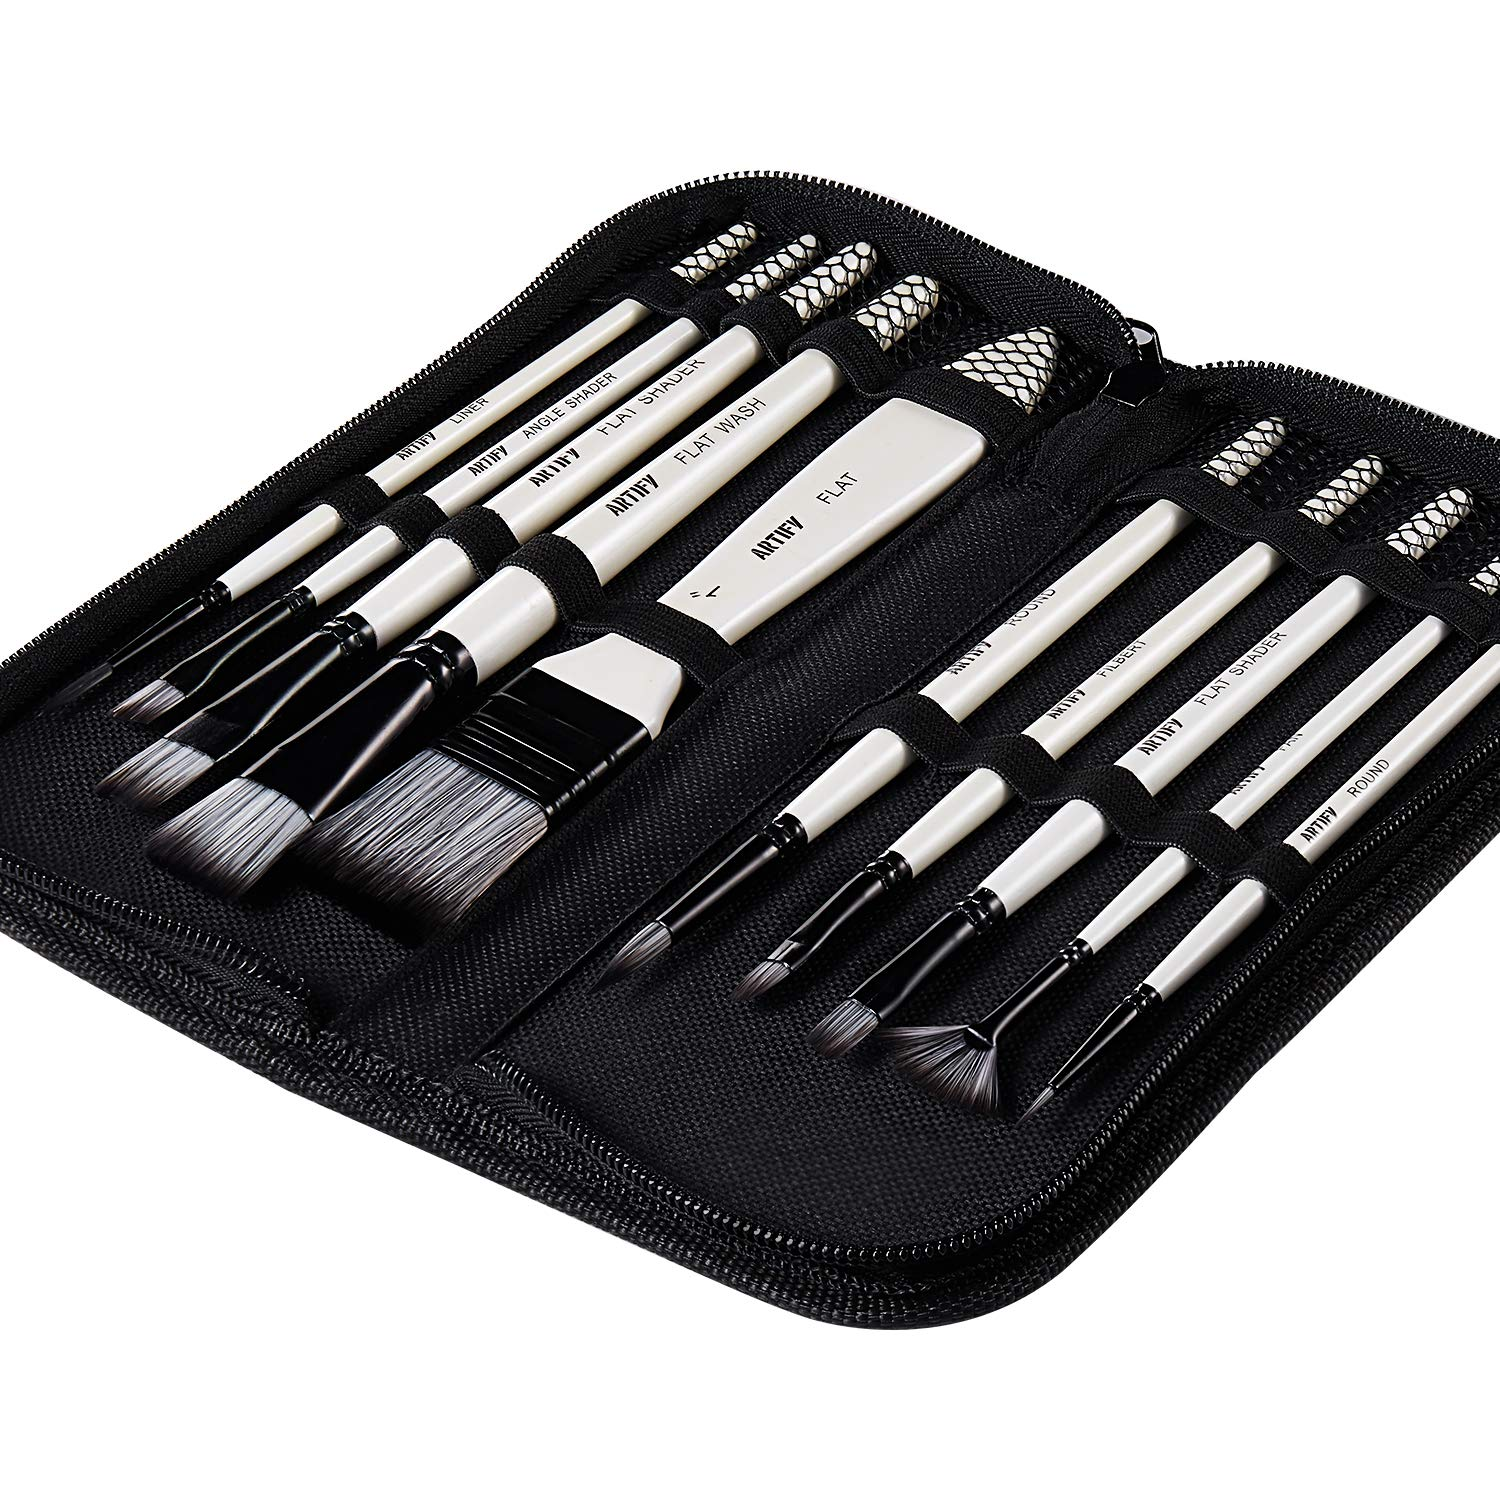 Artify 2019 New 10 Pcs Paint Brush Set Includes a Carrying Case Perfect for Acrylic, Oil, Watercolor and Gouache Painting by Artify Art Supplies